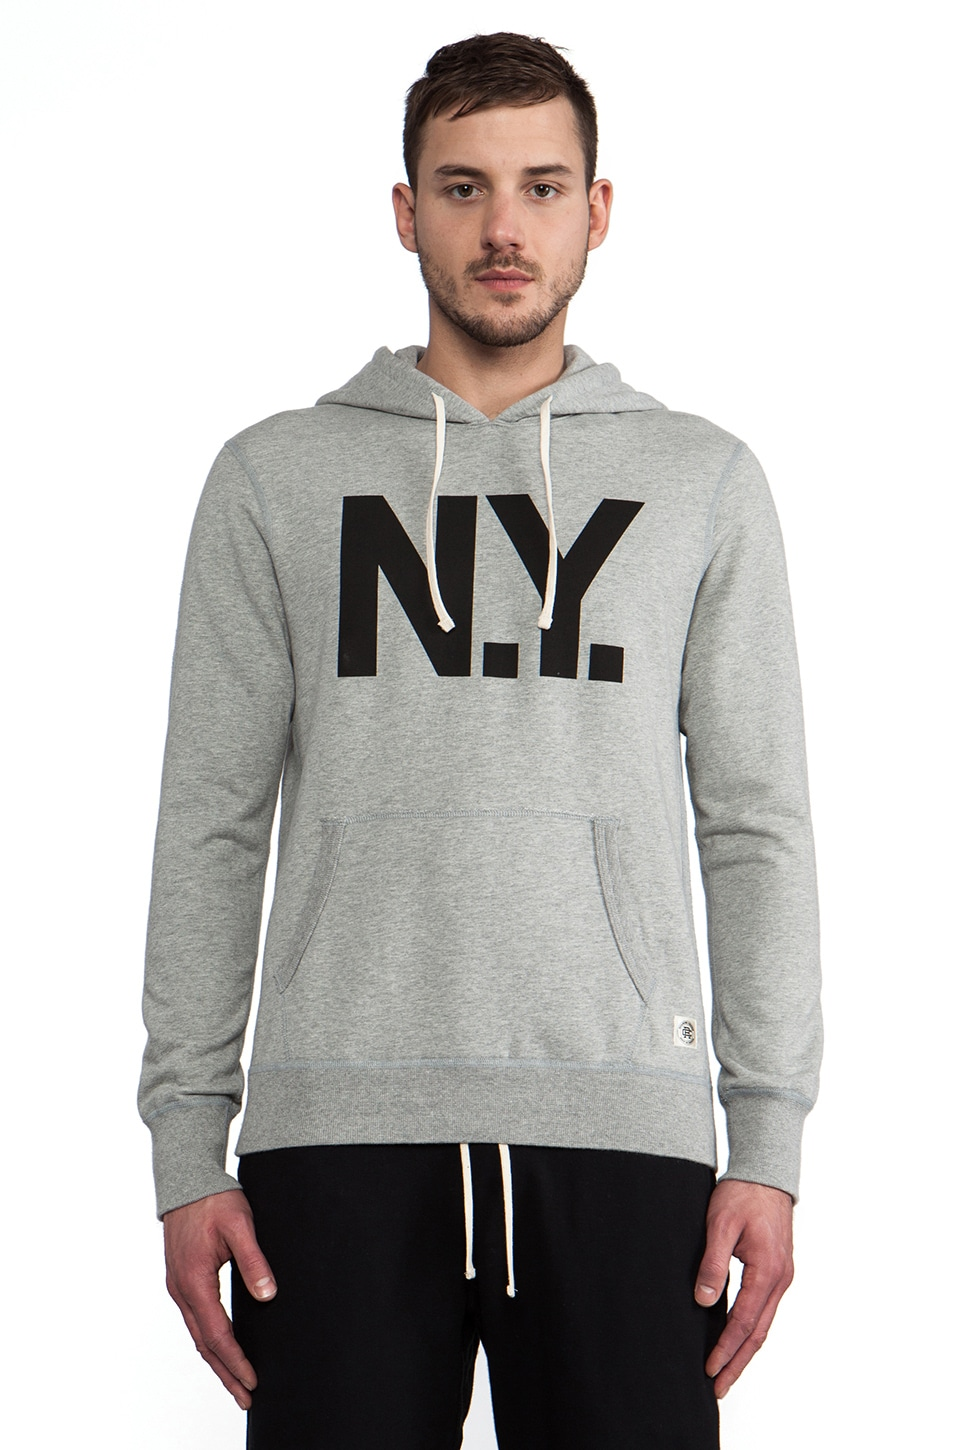 Reigning Champ x Everlast Sporting Goods Pullover Hoodie in Heather Grey